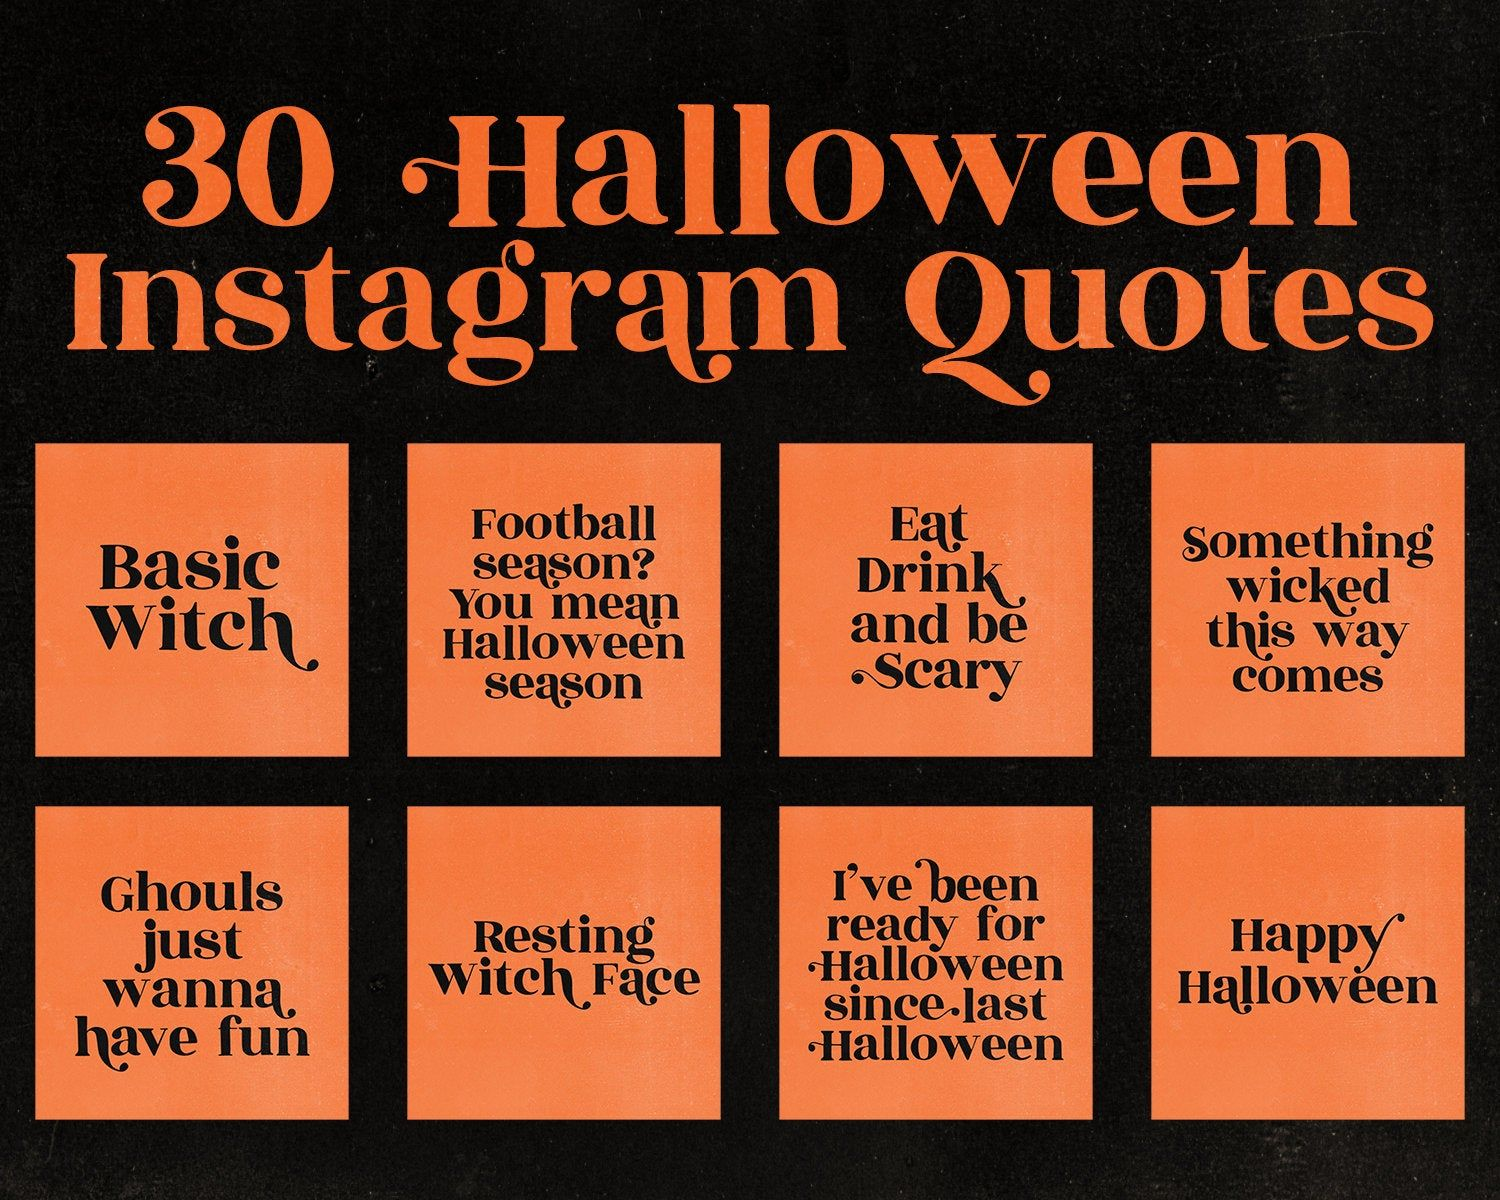 Halloween Quotes Instagram Social Media Witch Insta Branding Kit Funny Quotes Pagan Instagram Retro Quotes In Halloween Quotes Instagram Quotes Retro Quotes